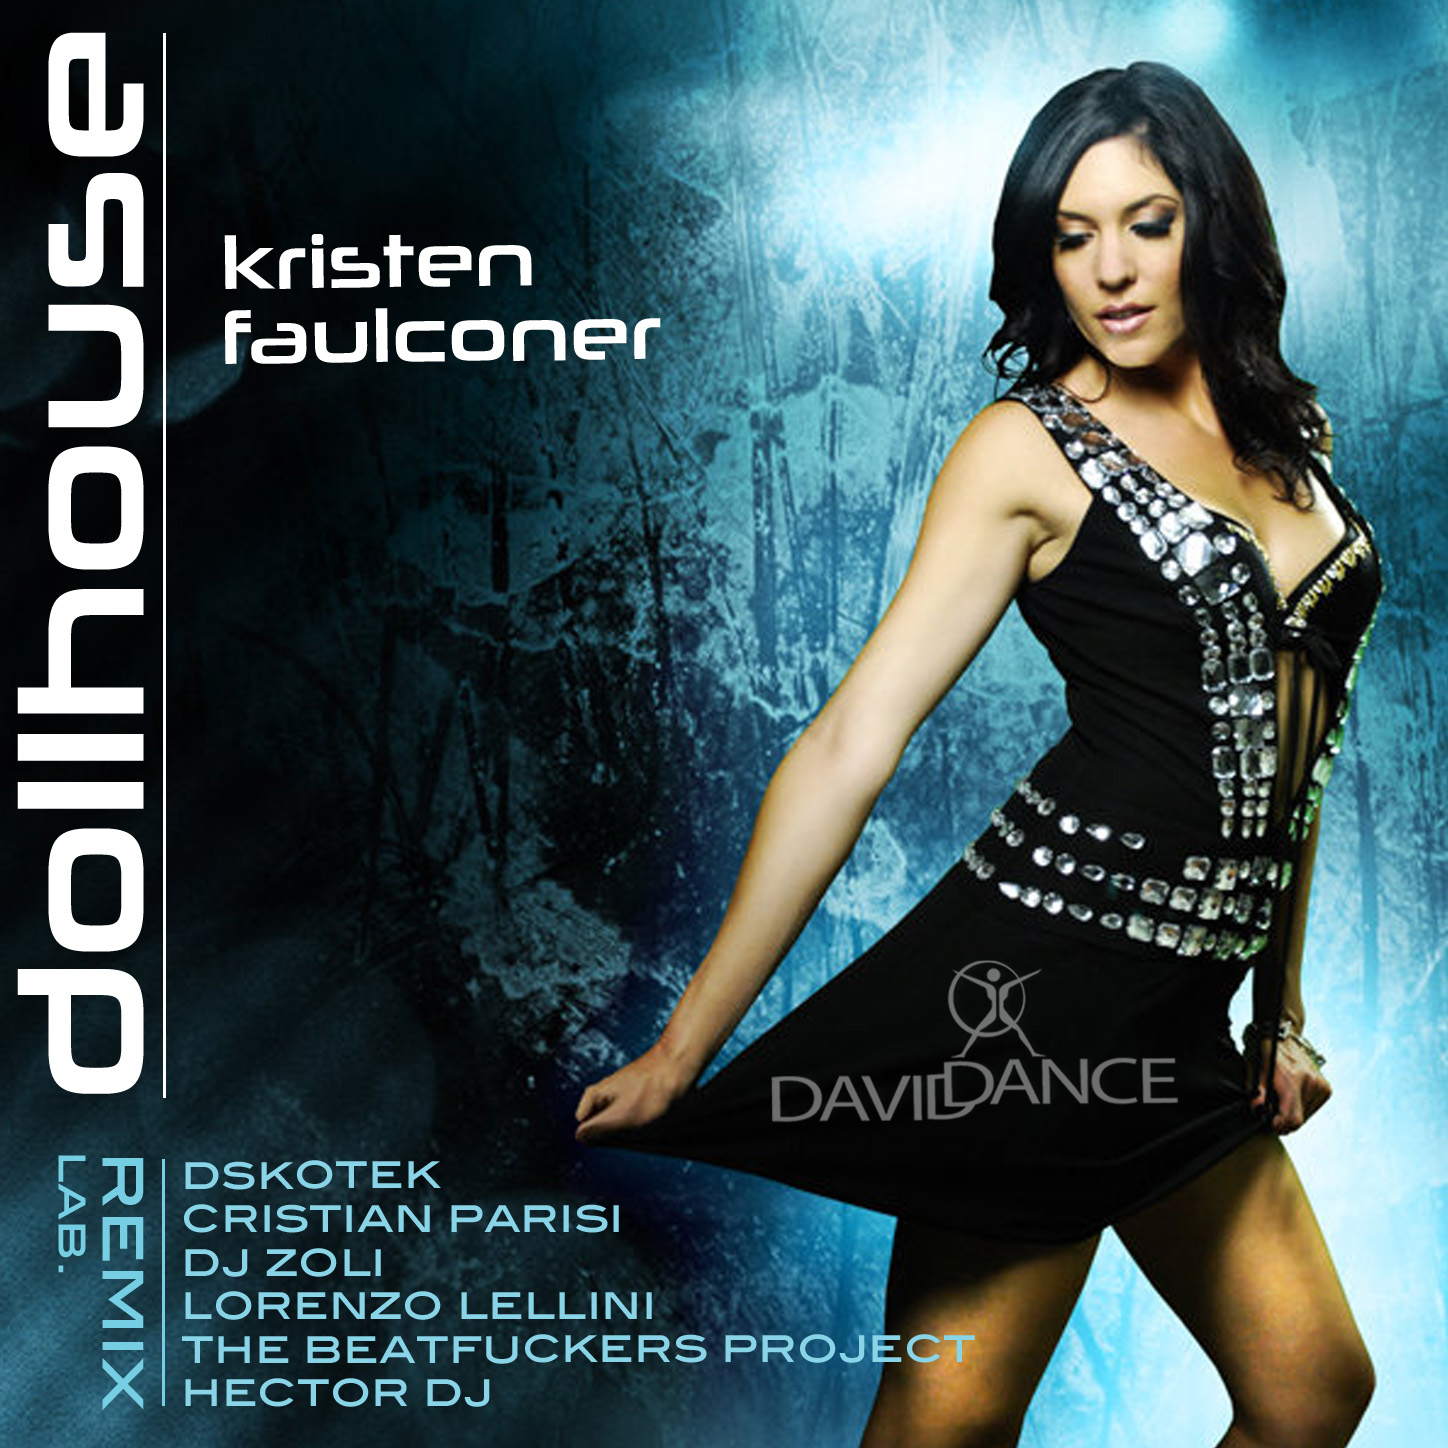 DOLLHOUSE – KRISTEN FAULCONER